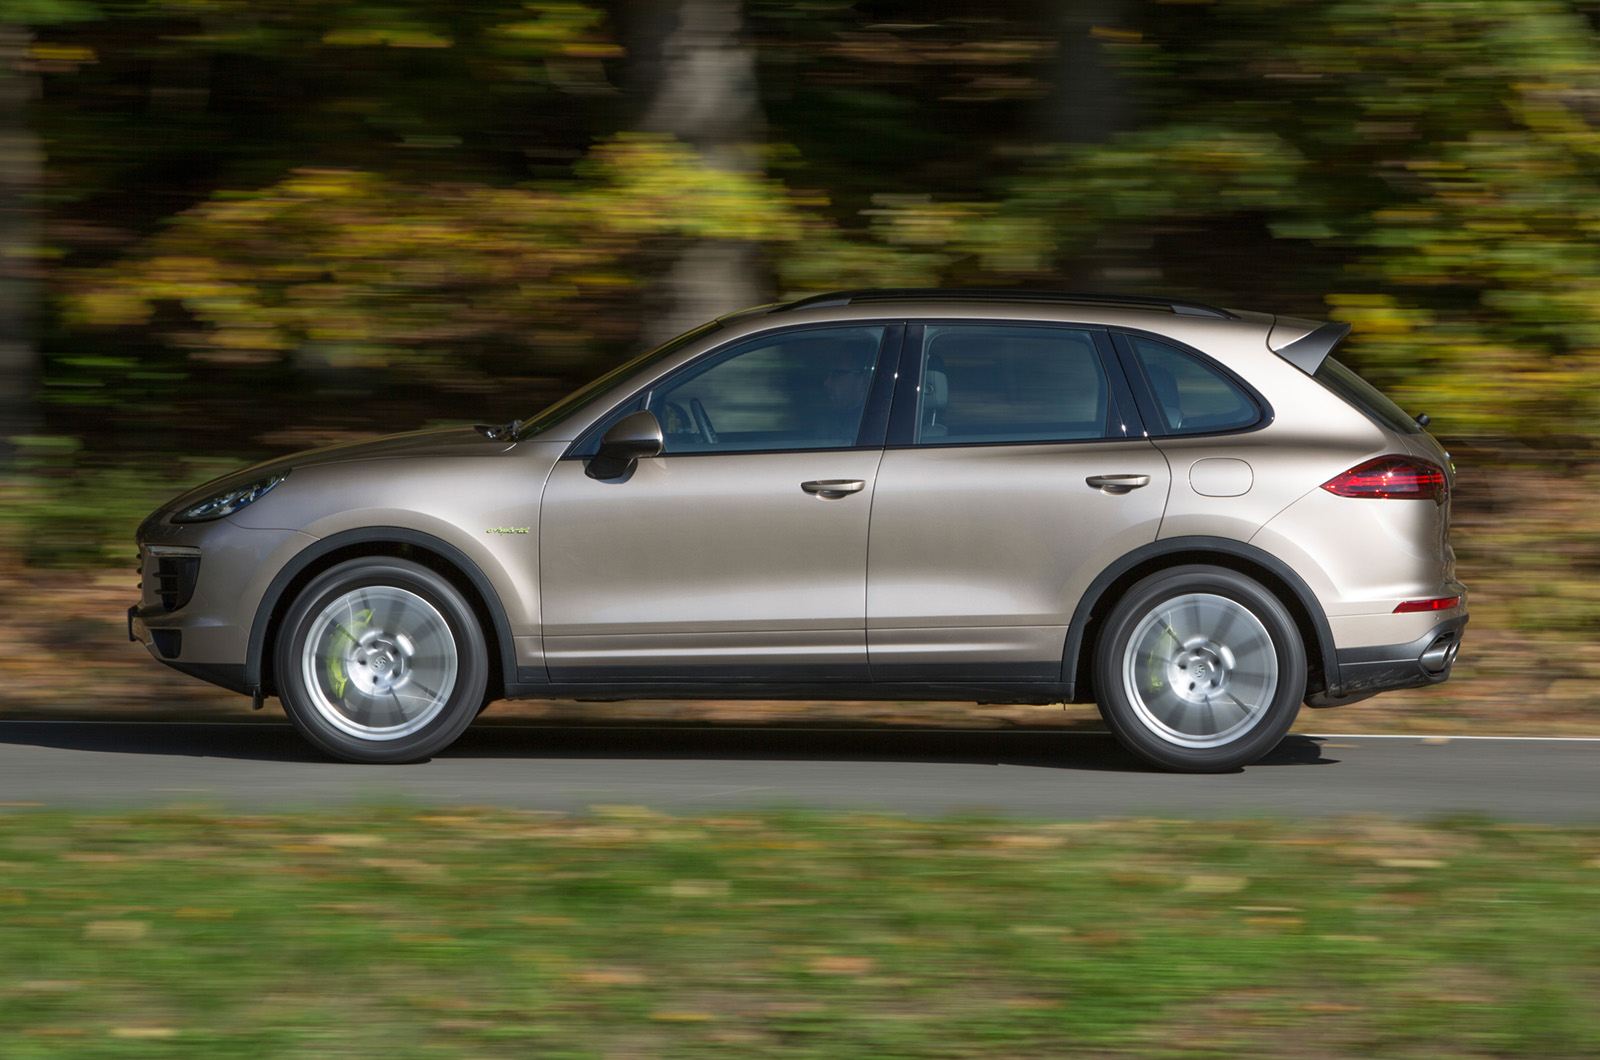 2014 porsche cayenne s e hybrid first drive review autocar. Black Bedroom Furniture Sets. Home Design Ideas